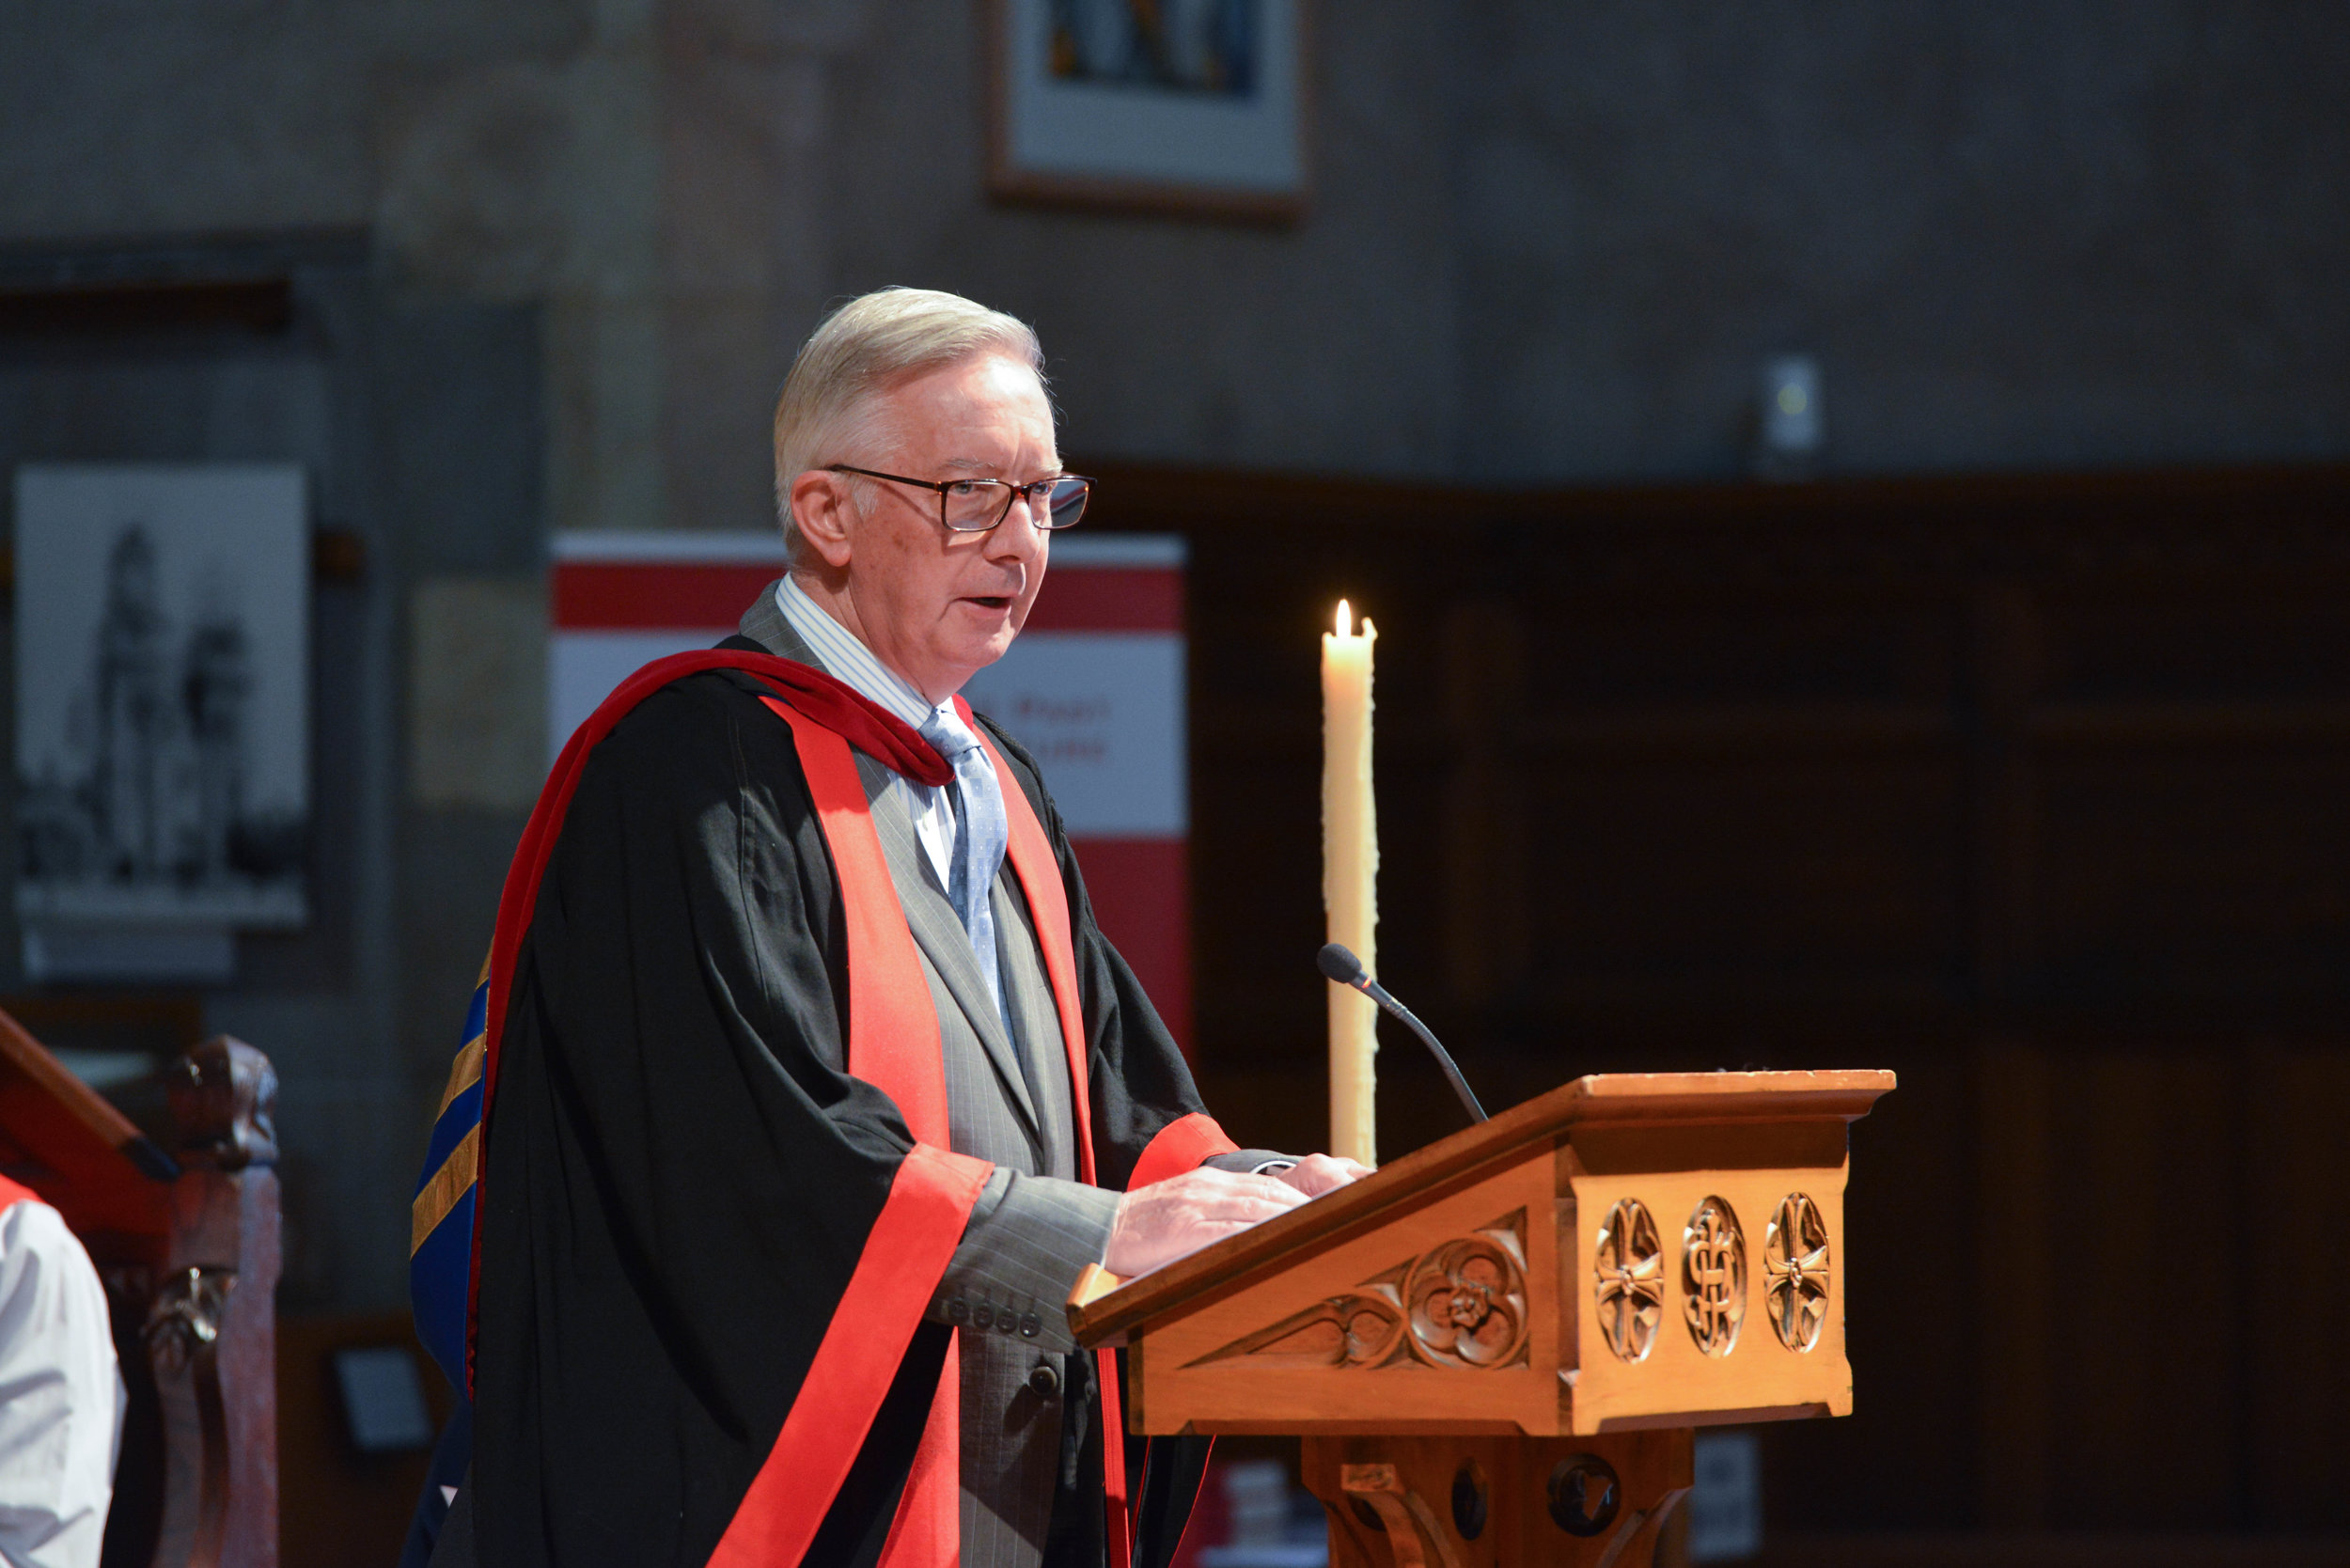 St Barnabas College Principal, The Rev'd Dr Don Owers addresses the gathering